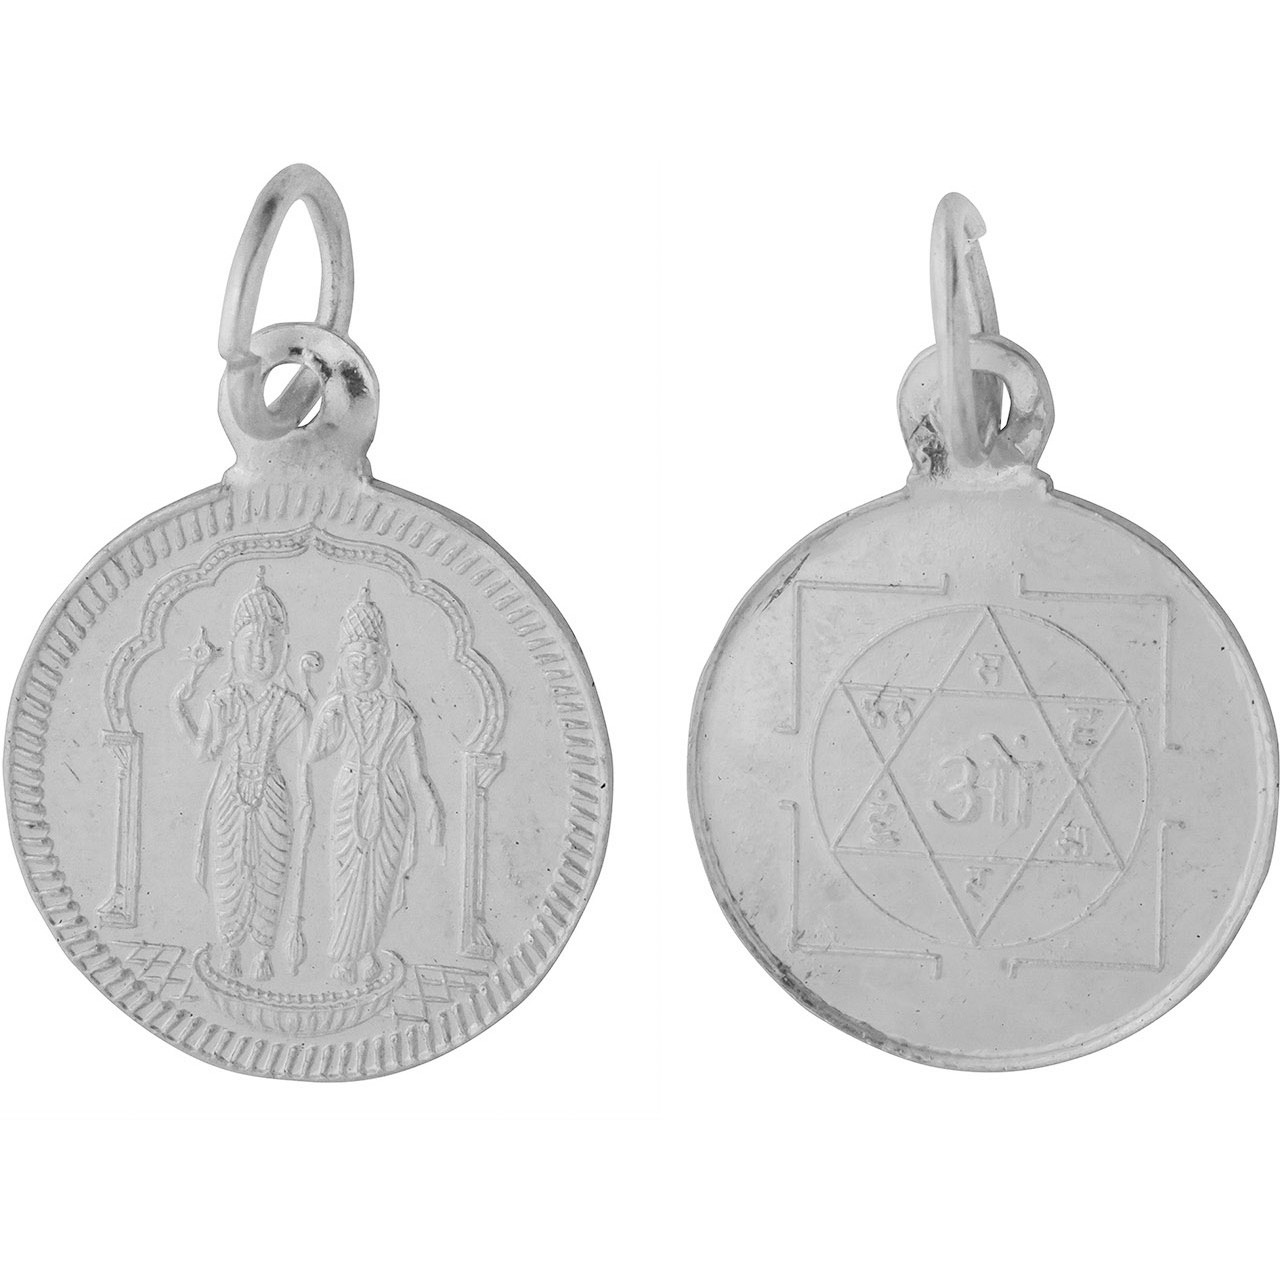 Vishnu-Lakshmi with Yantra on  Reverse (Two Sided Pendant)